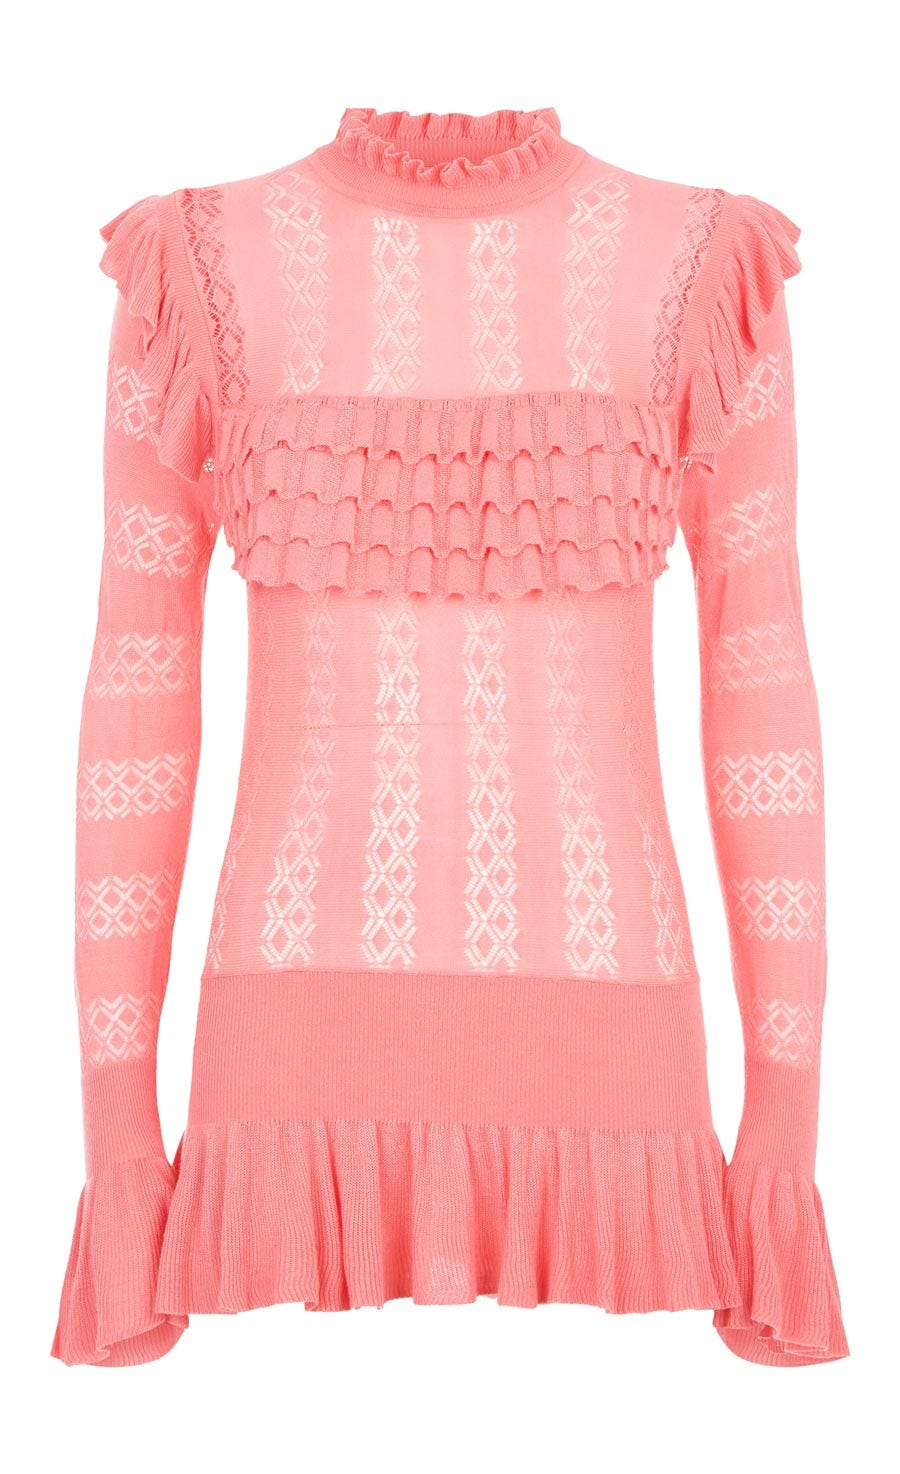 Cypre Pointelle Frill Top, Cameo Pink